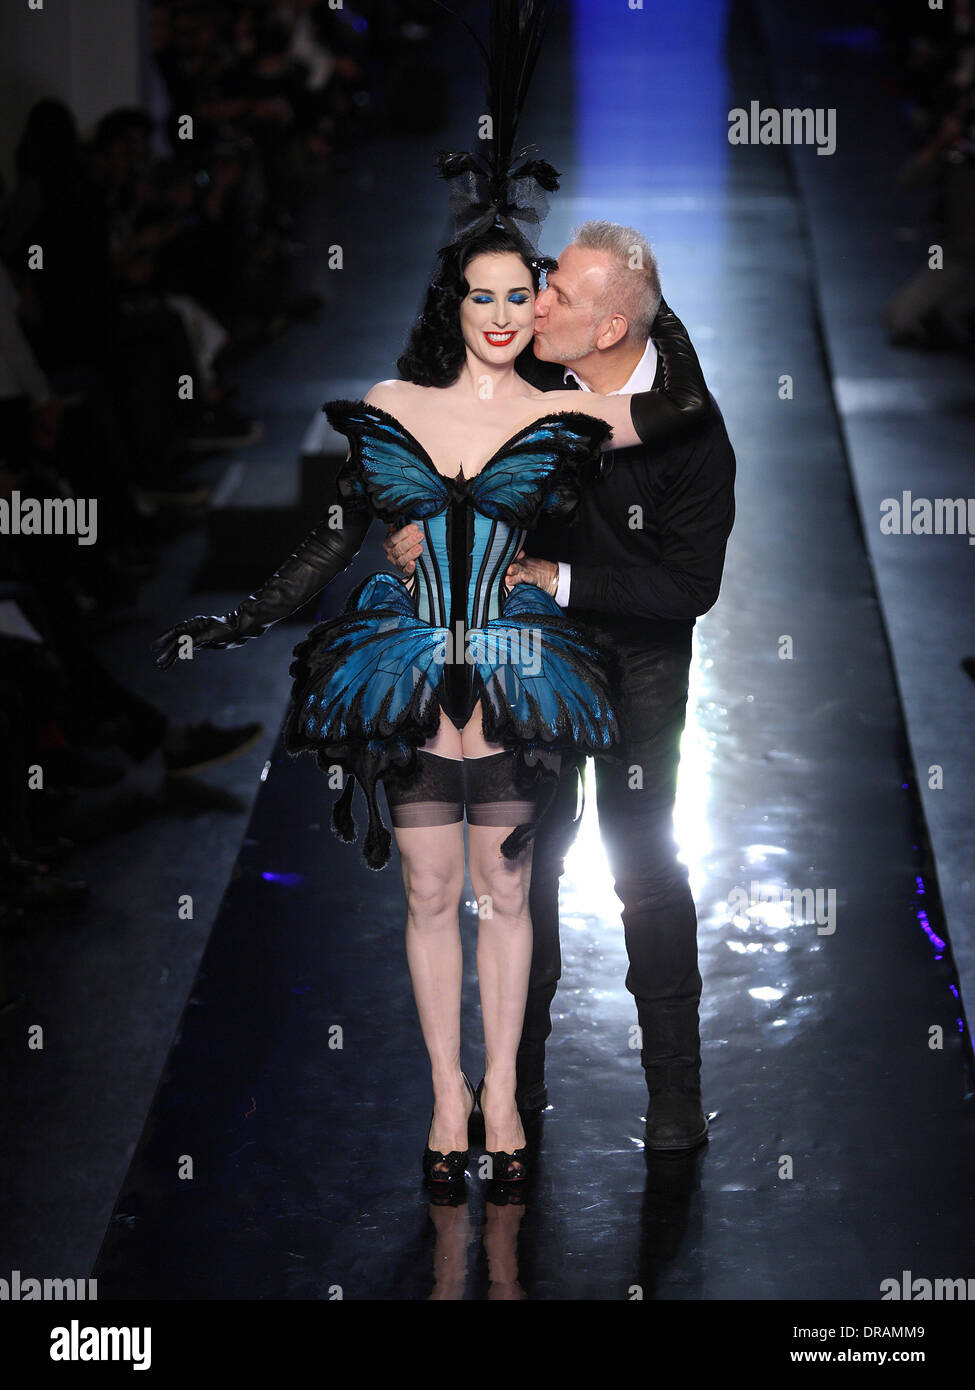 Paris, France. 22nd Jan, 2014. US singer and performer Dita Von Tese (L) and French designer Jean Paul Gaultier - Stock Image